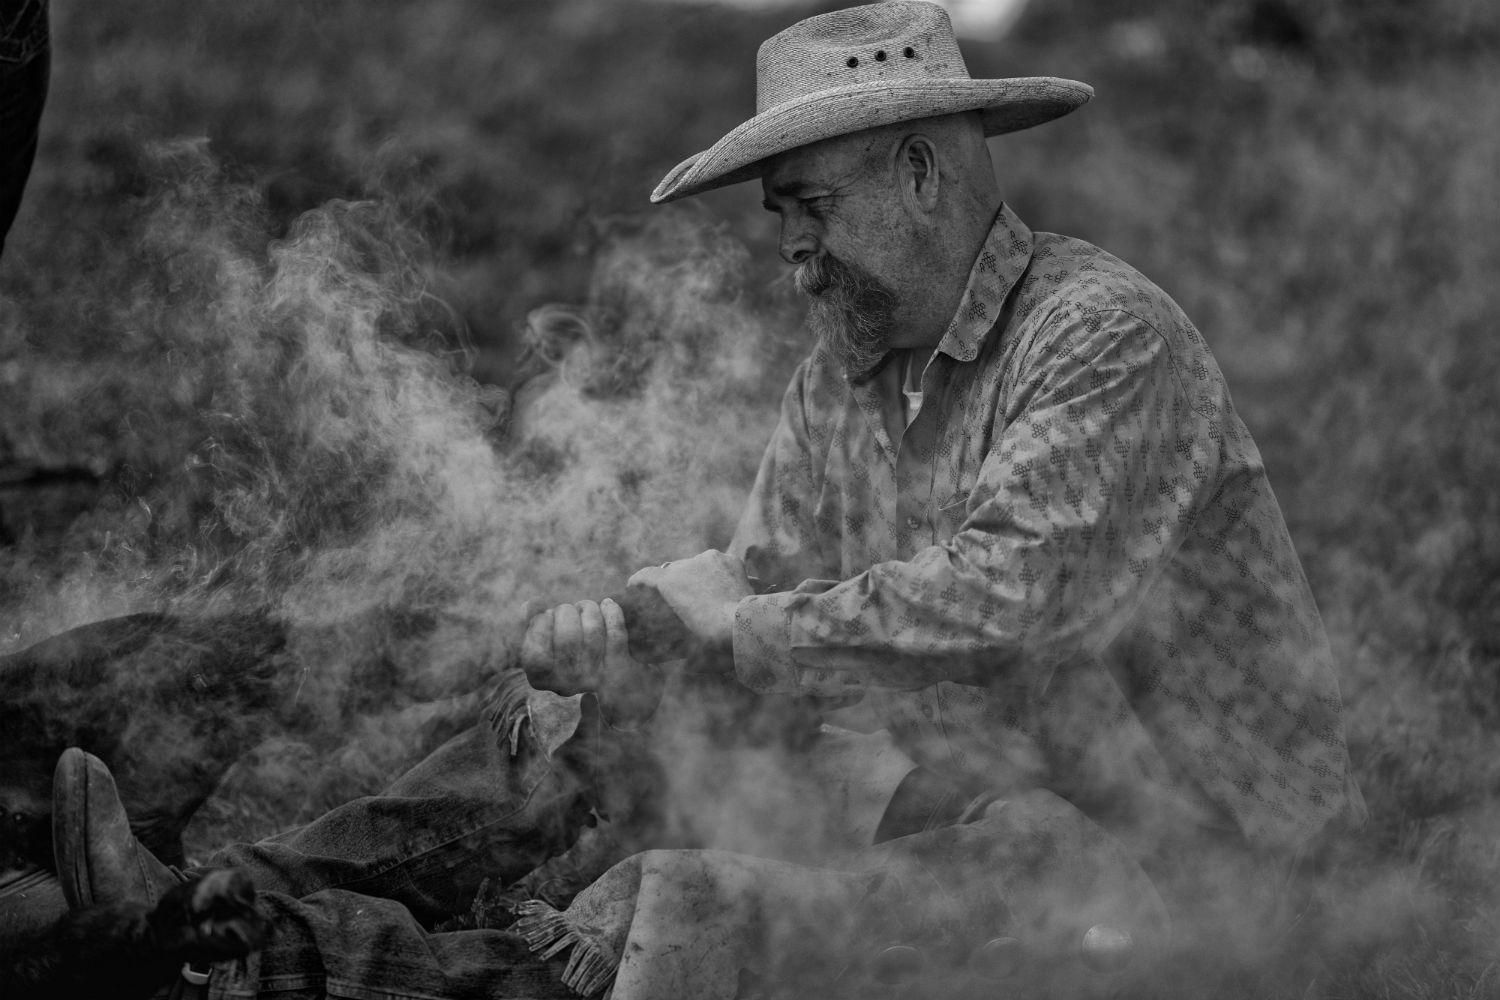 Scott Chattaway applies a brand on his family's ranch.